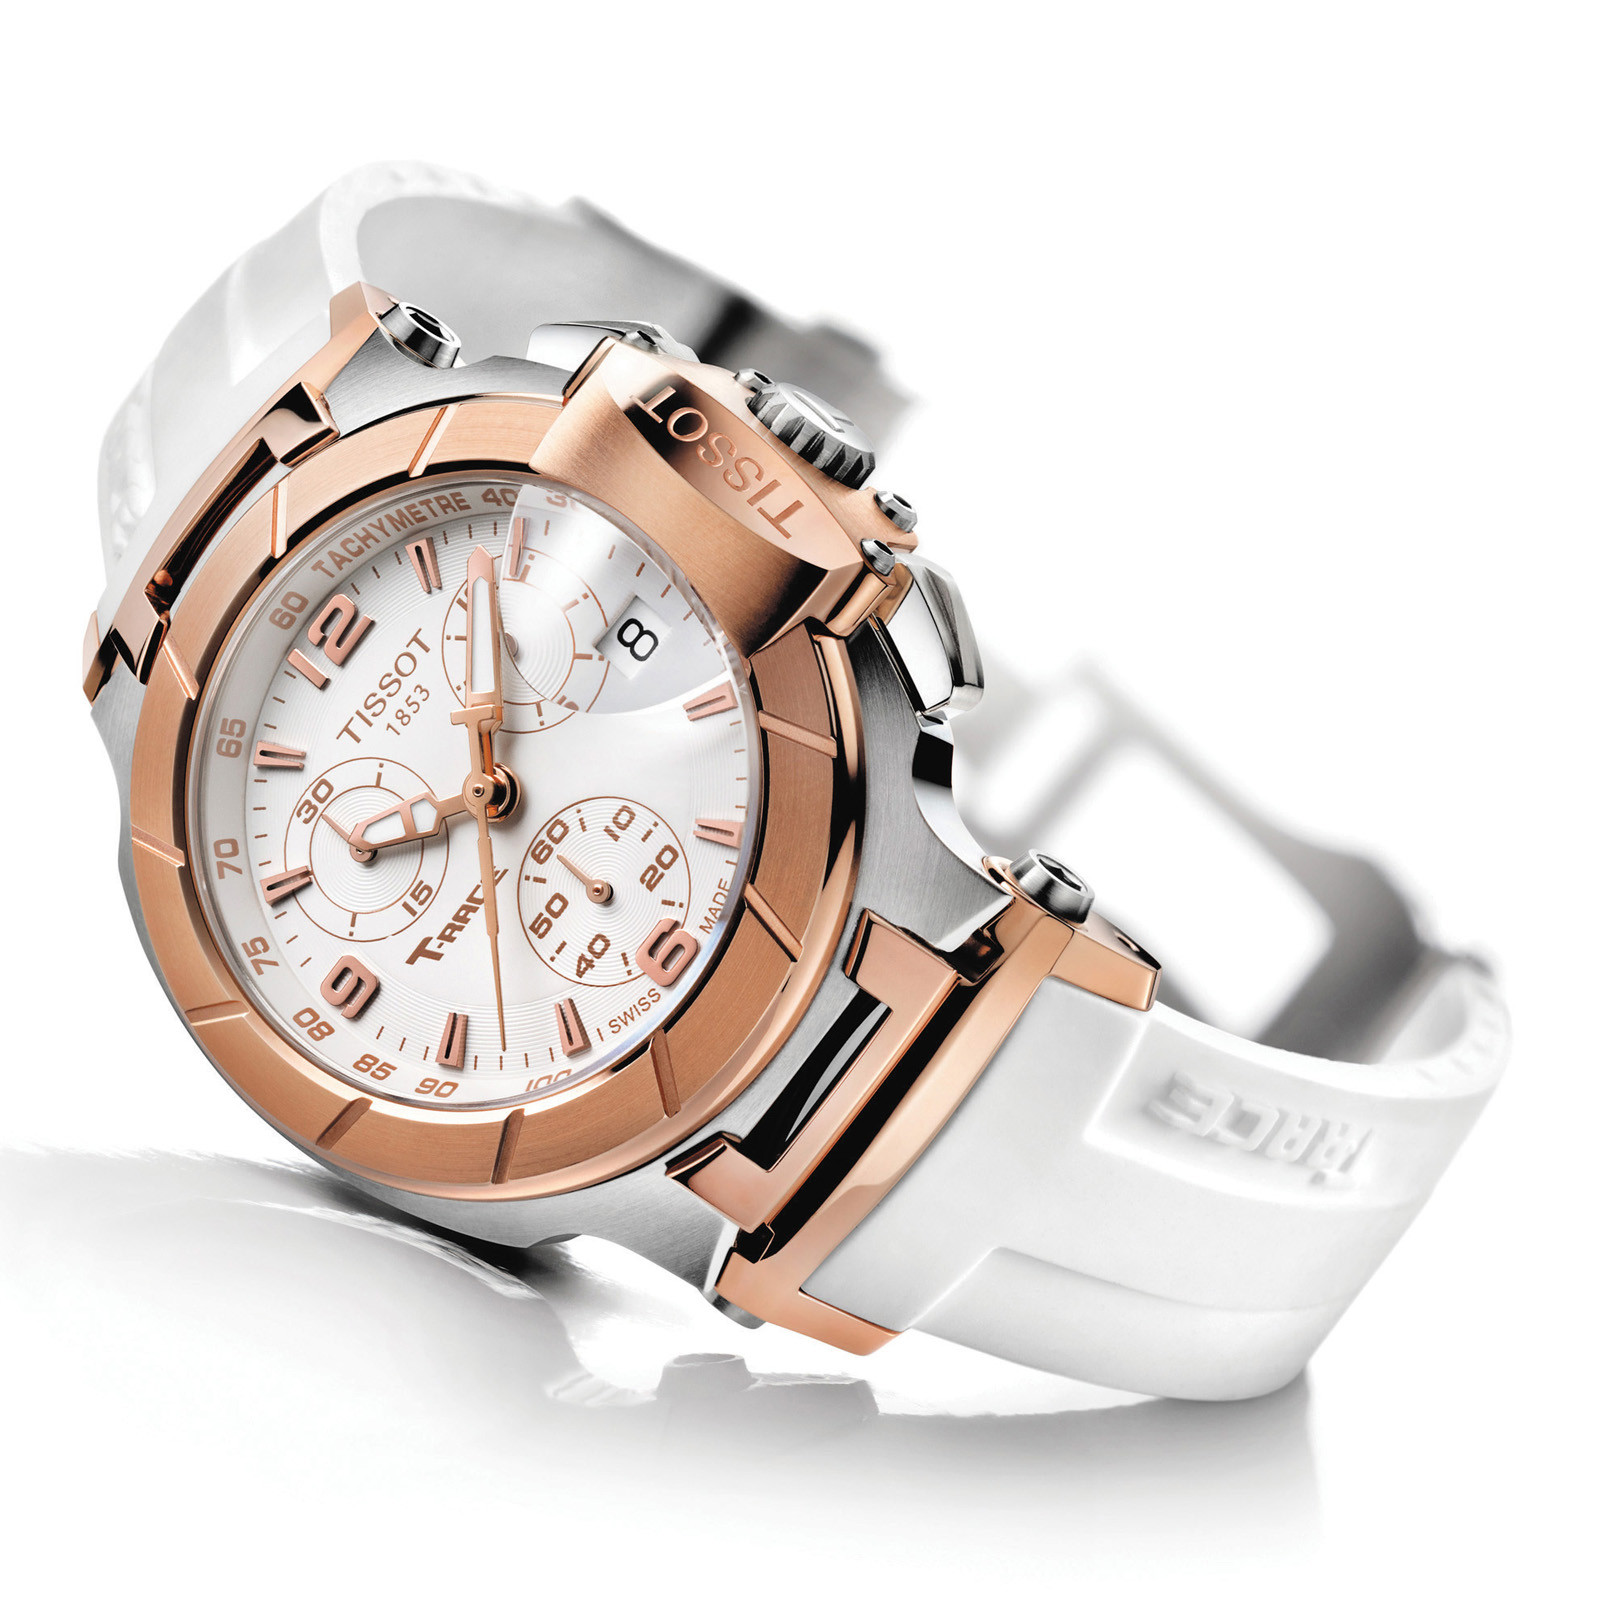 New Women's Tissot T- Wave